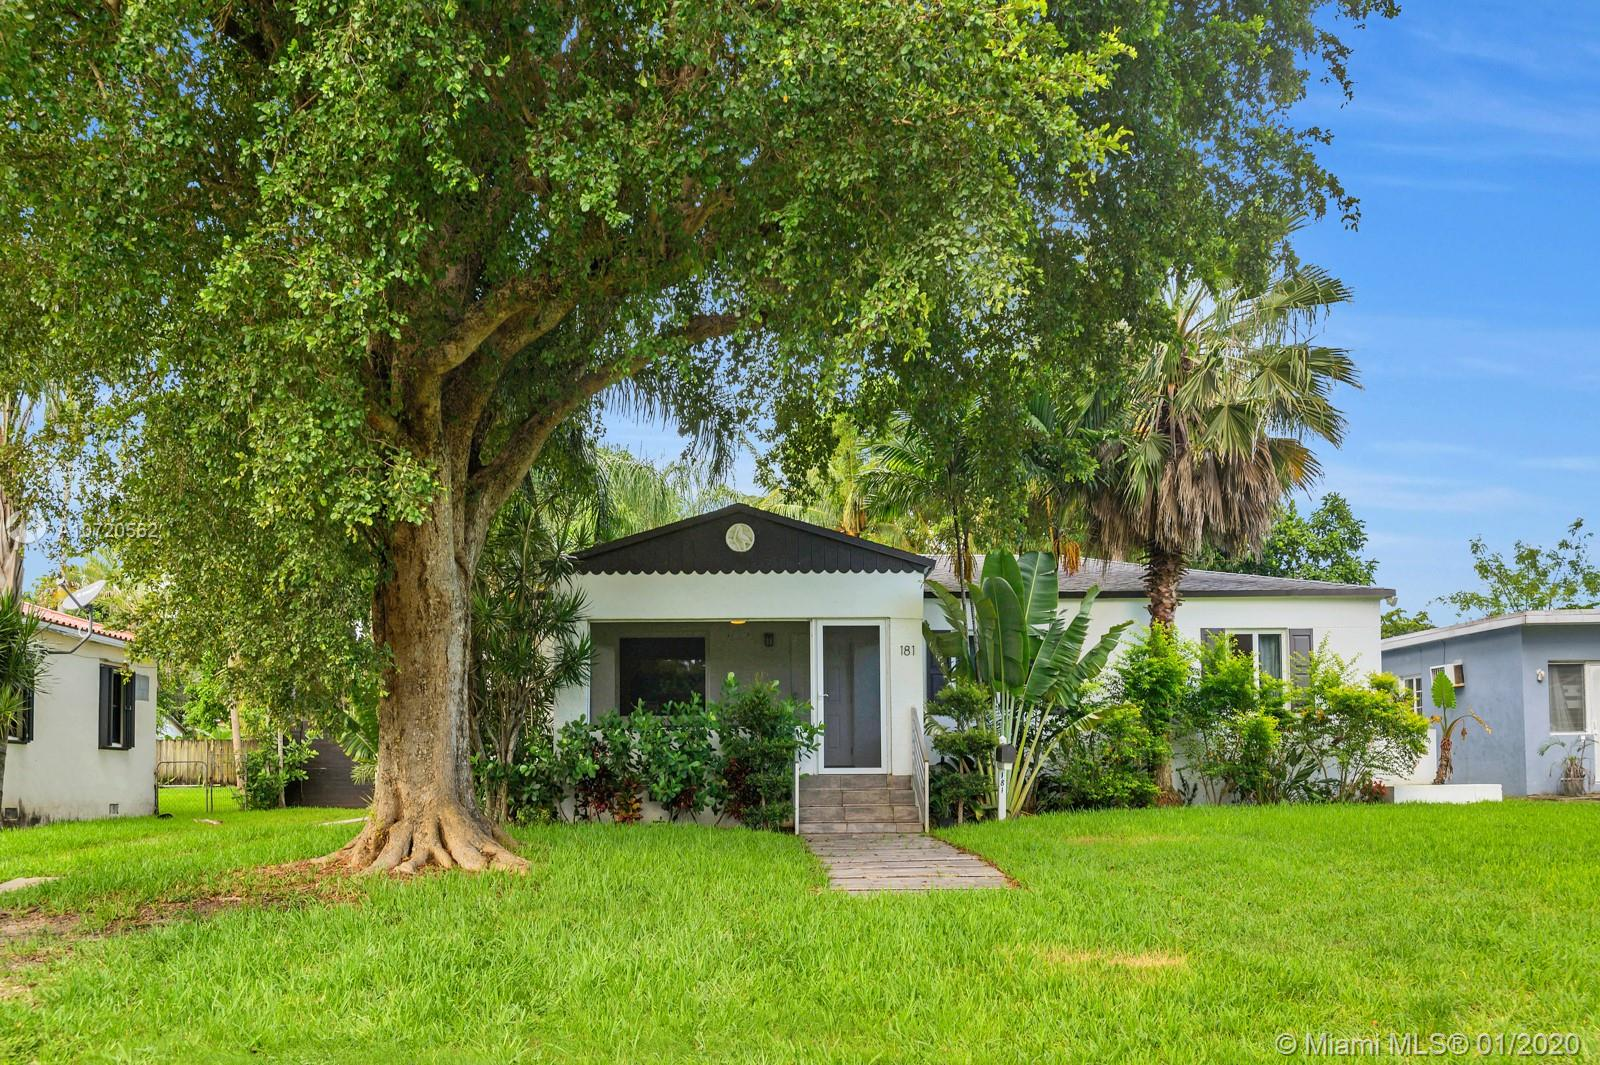 181 NW 88th St, one of homes for sale in Miami Shores